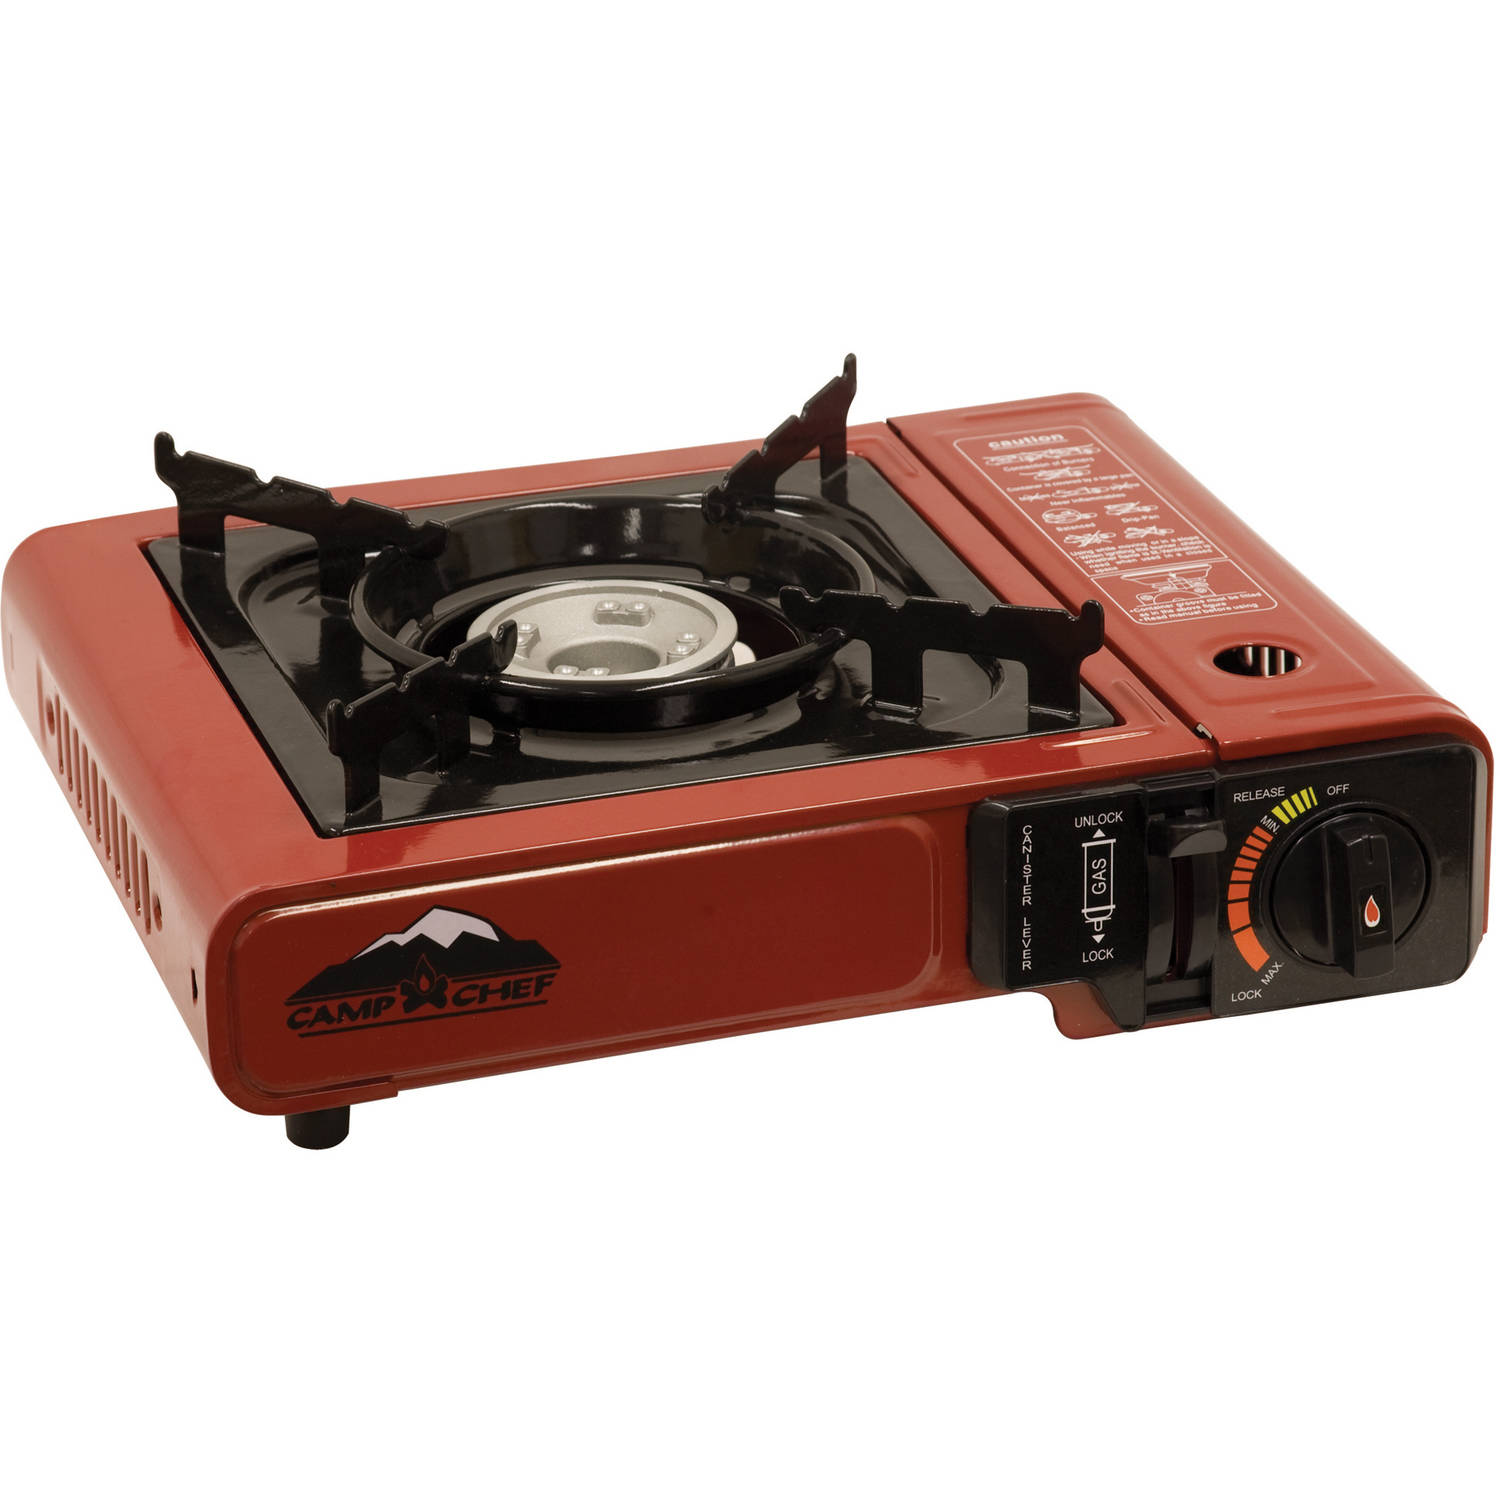 Camp Chef Butane Matchless Ignition Single Burner Camp Stove by Camp Chef